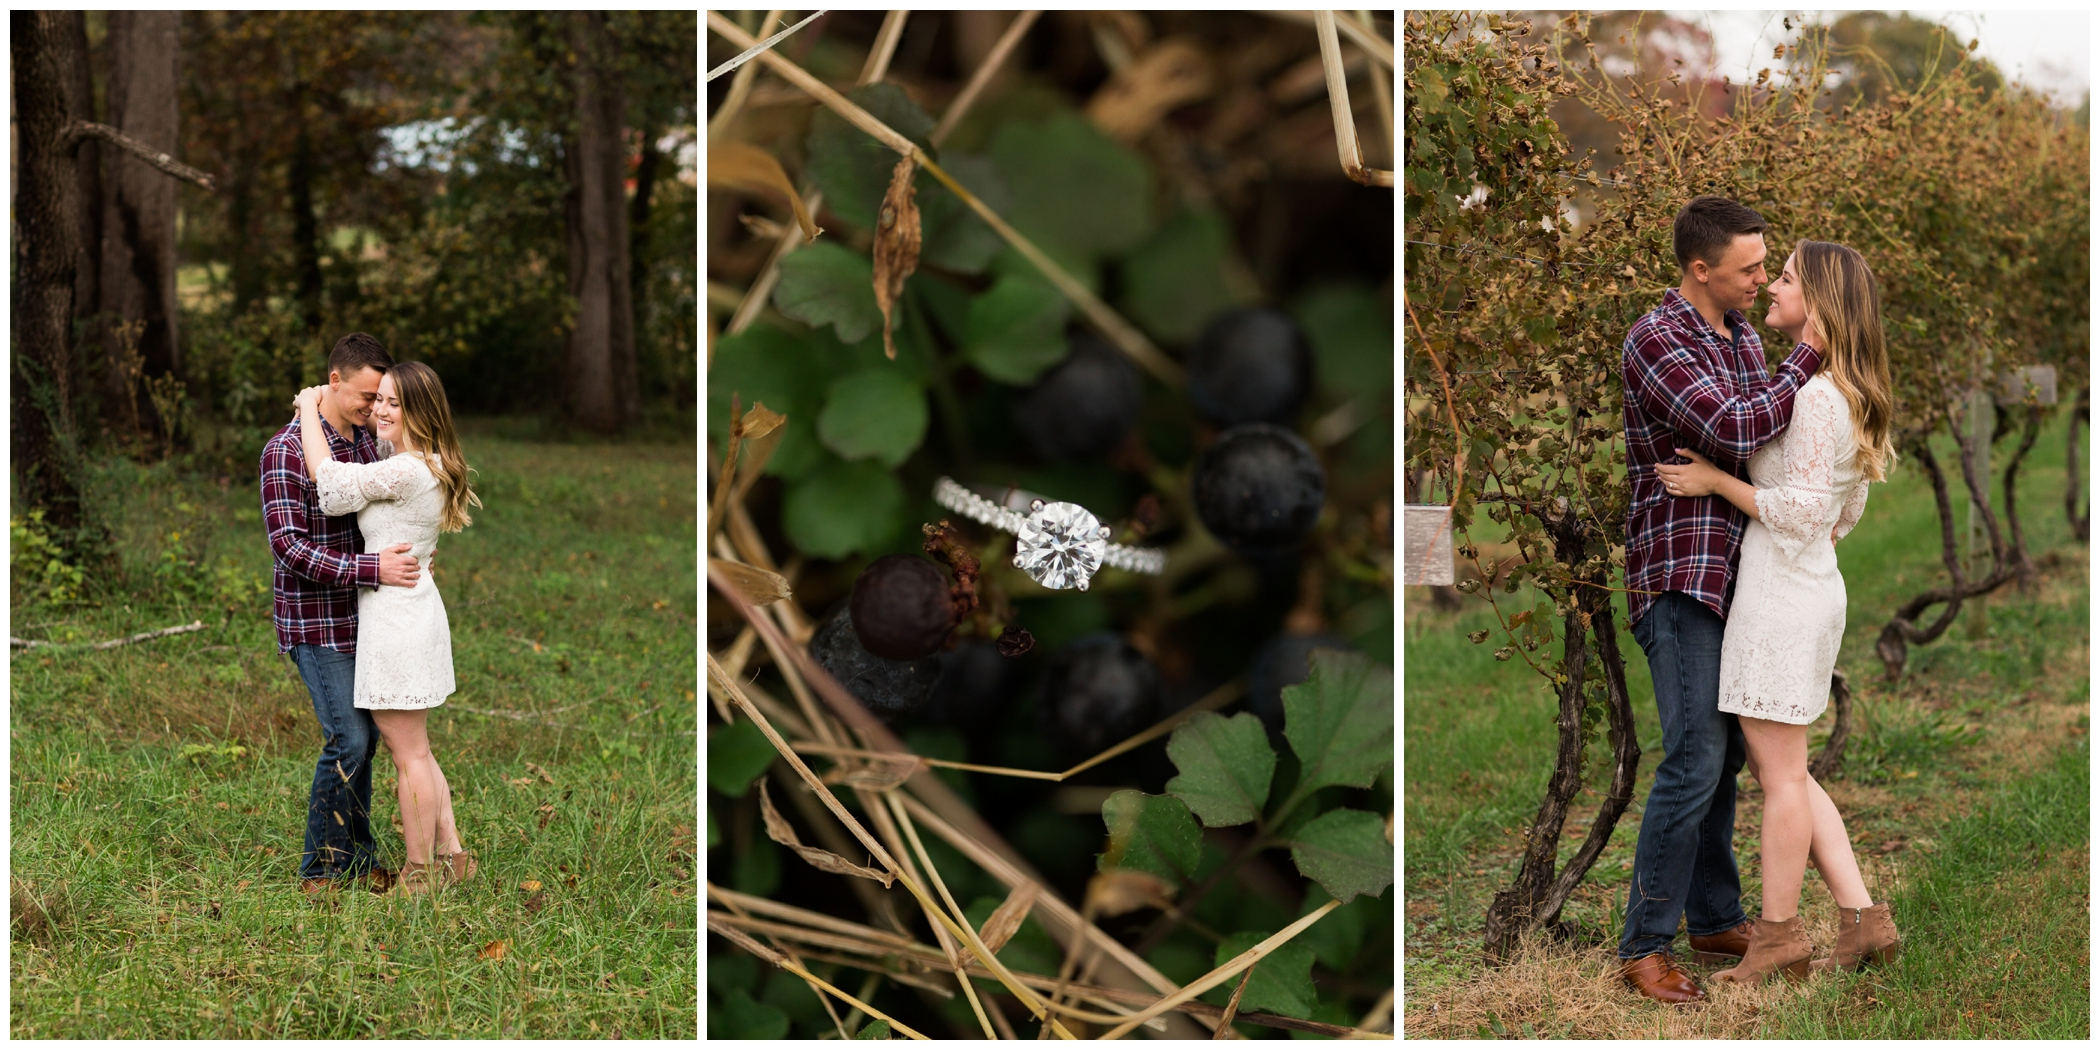 Fall engagement session inspiration and outfit ideas for Virginia couples and weddings.